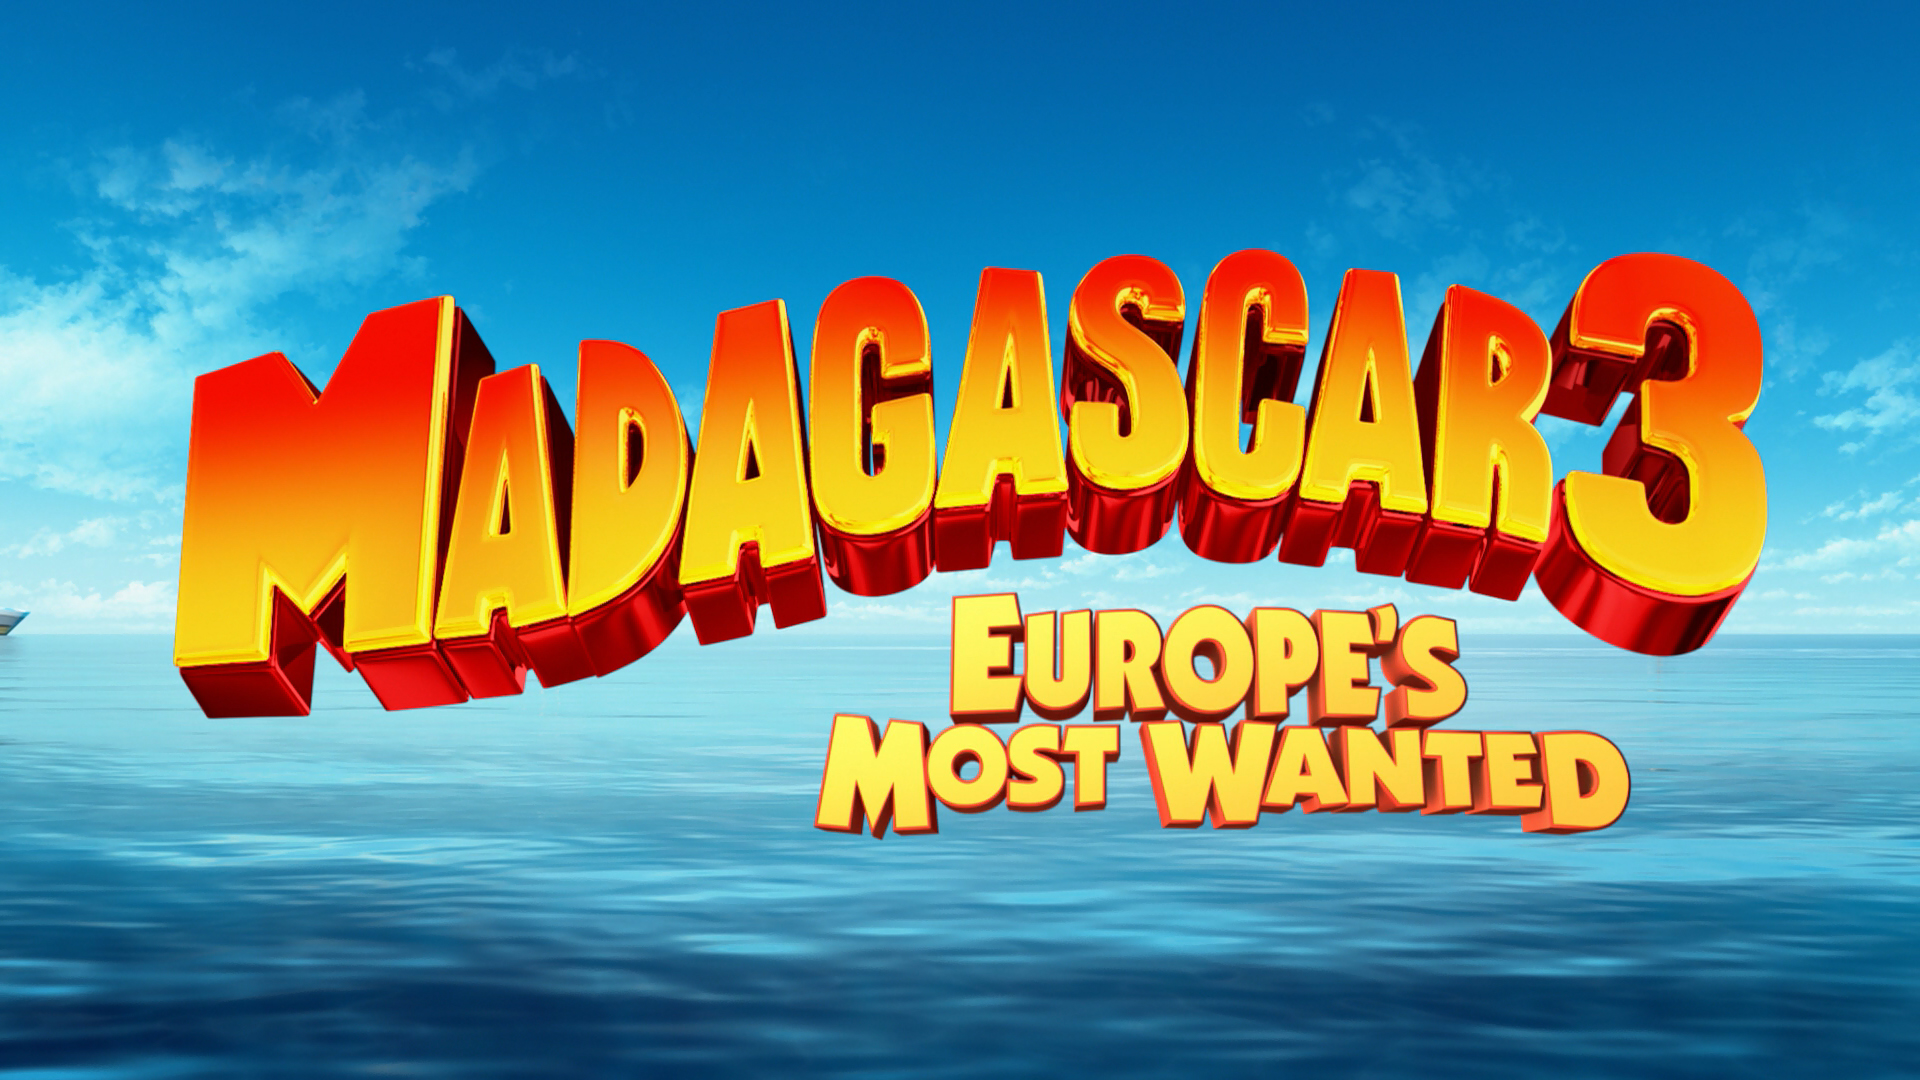 Madagascar3 Europes Most Wanted